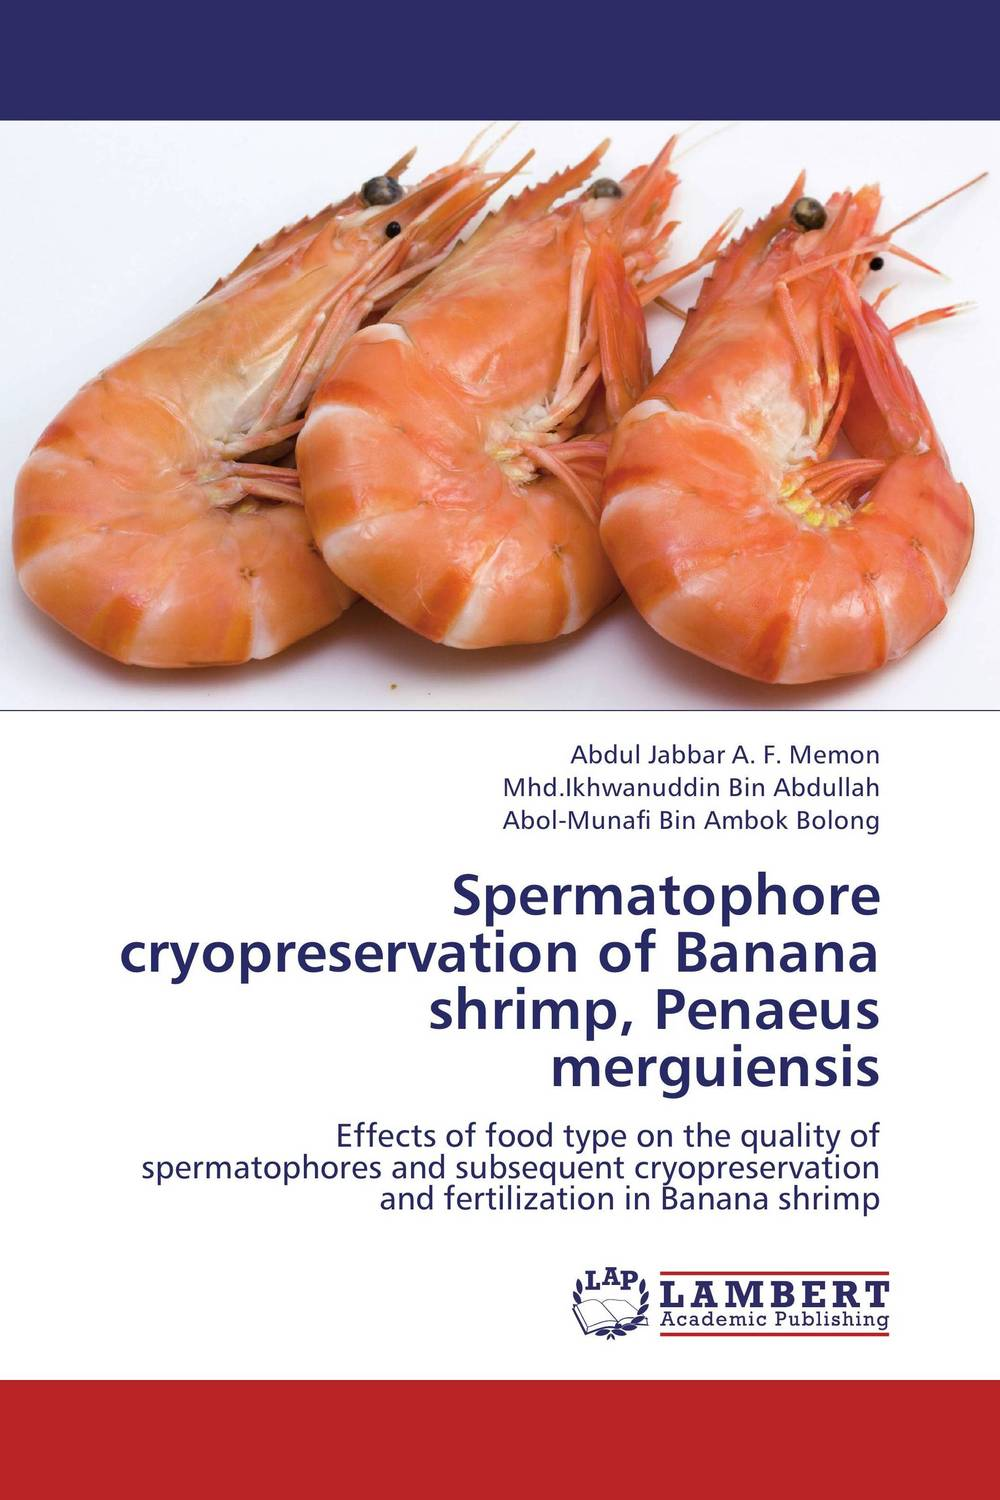 Spermatophore cryopreservation of Banana shrimp, Penaeus merguiensis alternative herbal medicines for shrimp aquaculture